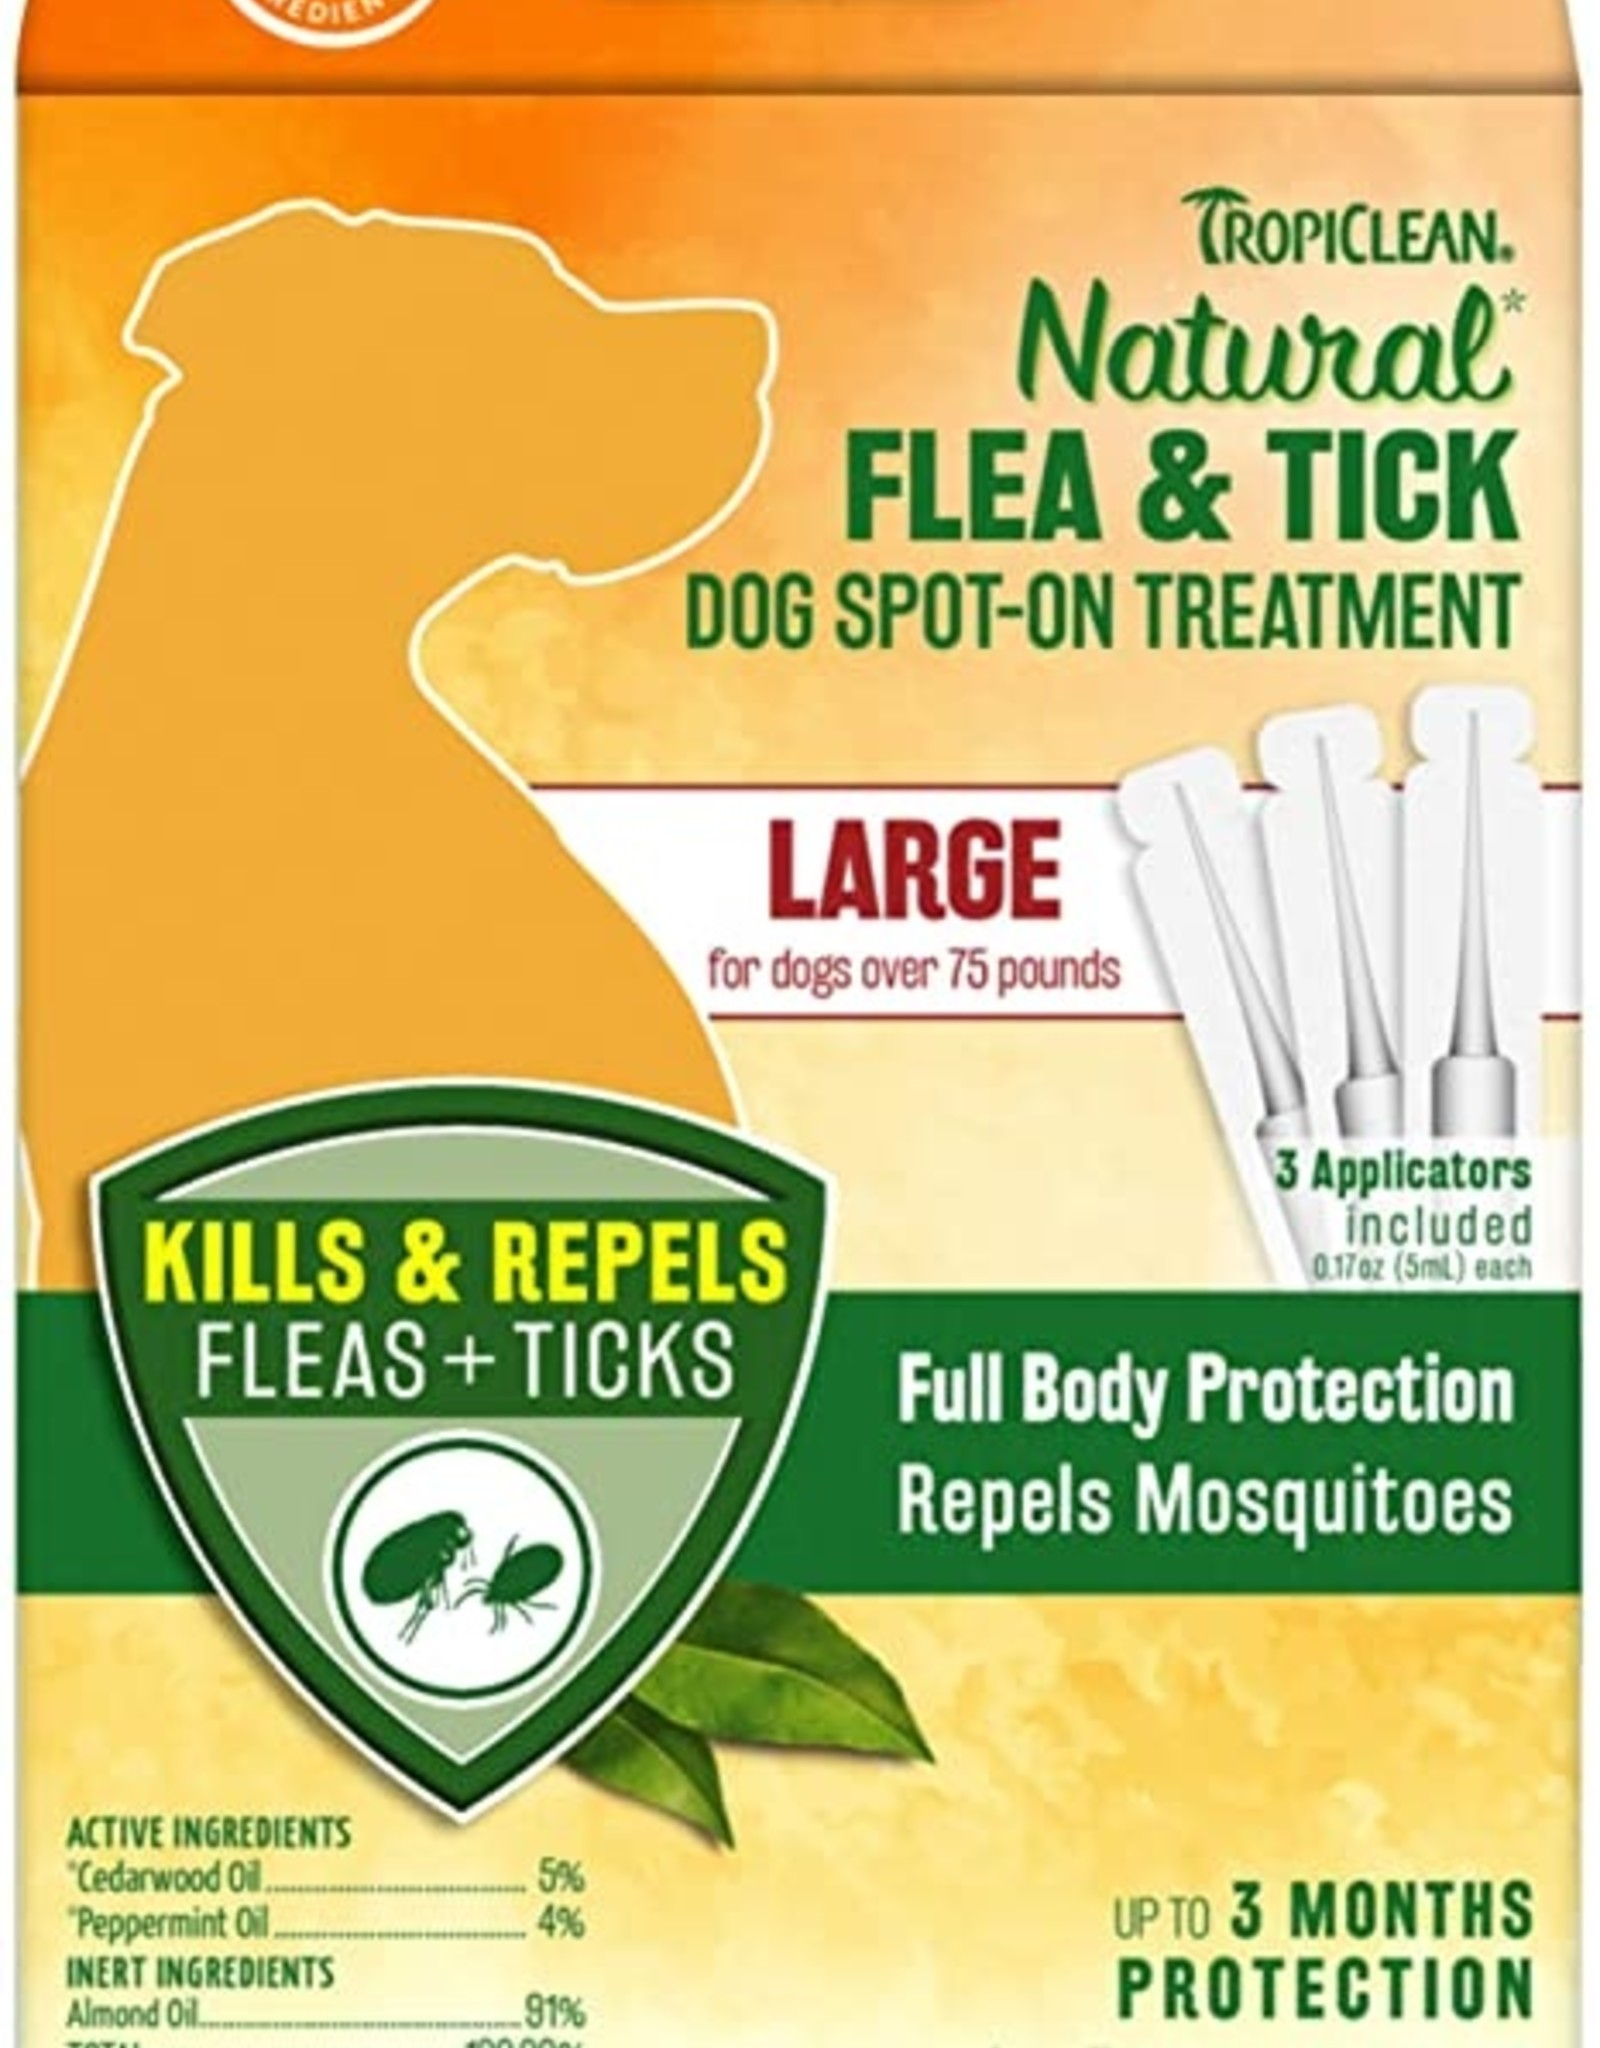 TropiClean Natural Flea & Tick Spot On Treatment for Dogs 0.68 fl oz. - 4 Count - Large